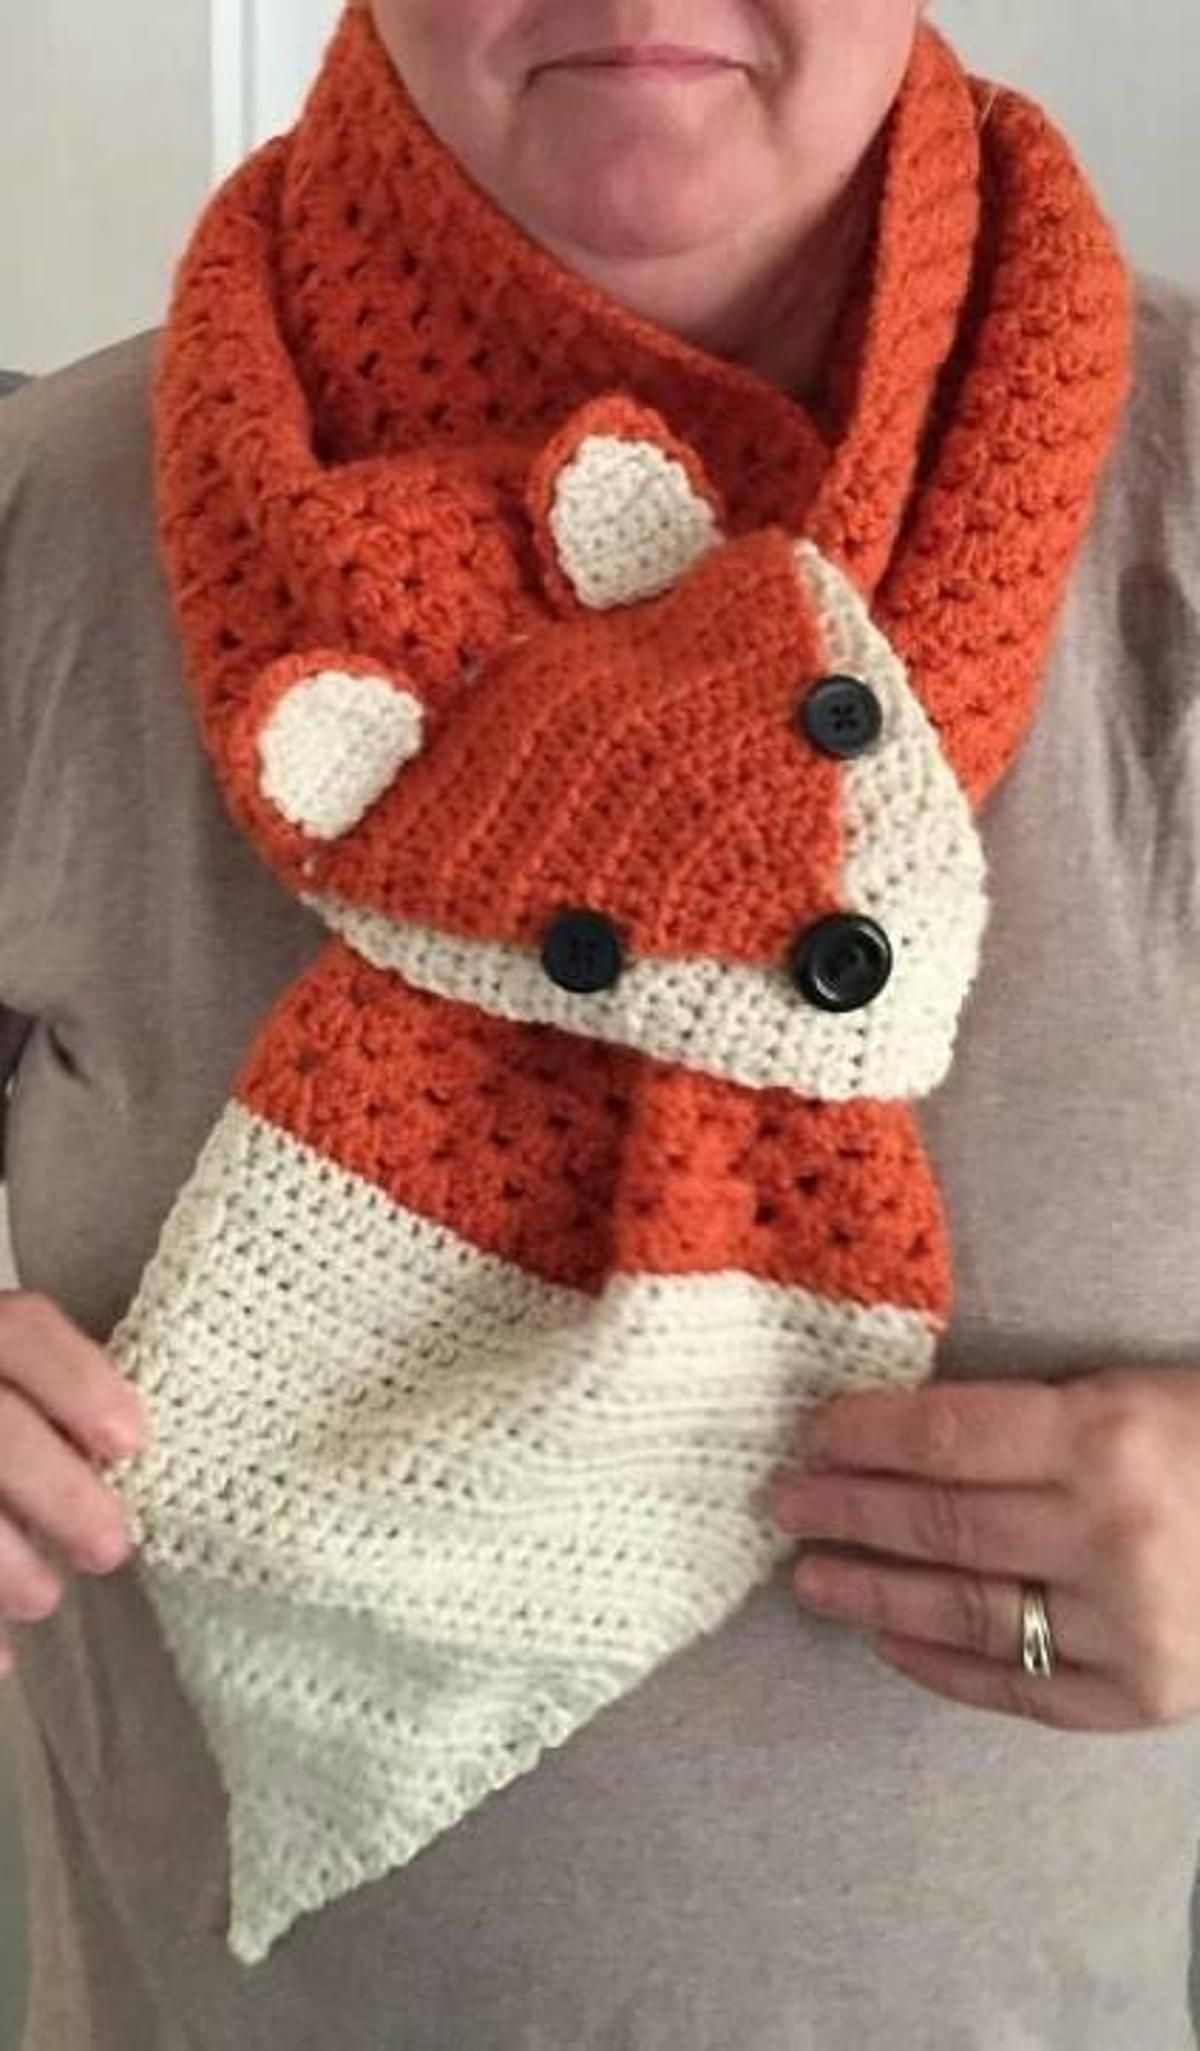 Crochet Animal Scarves Patterns You'll Love Video Tutorial ...